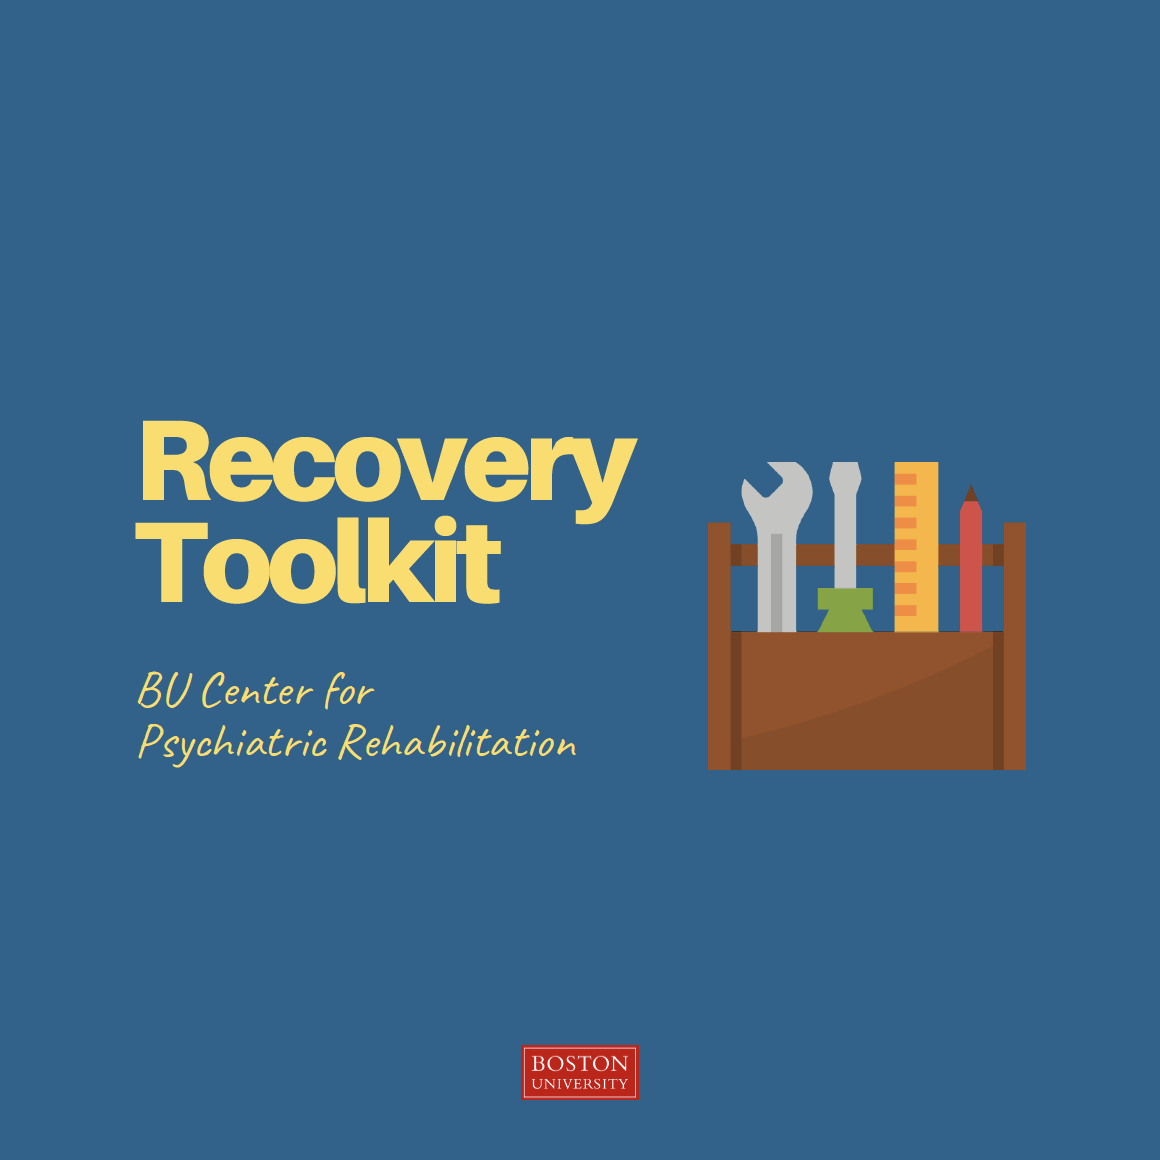 Recovery Toolkit